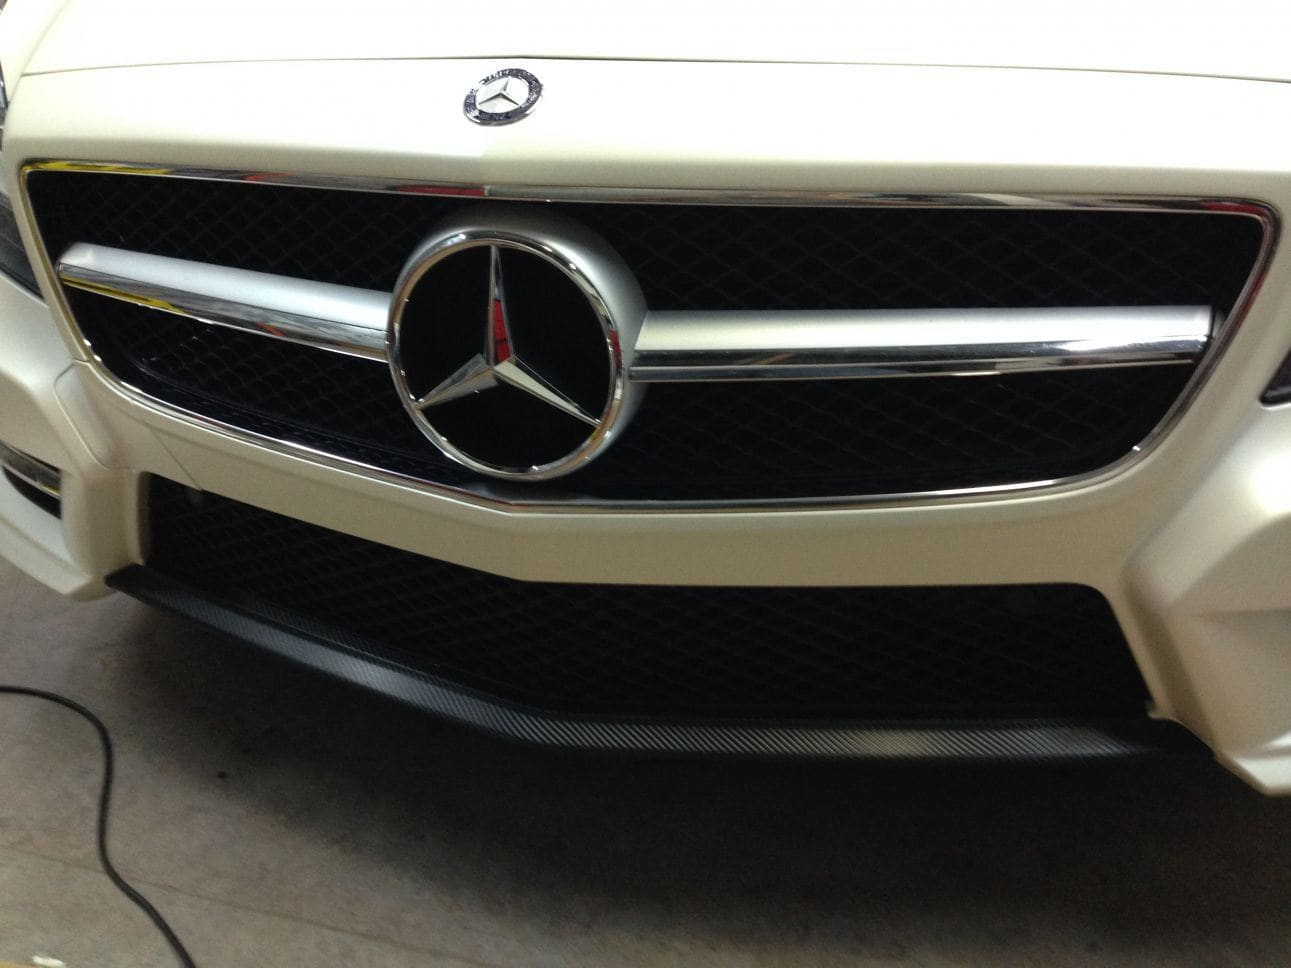 Mercedes CLS met White Satin Pearl Wrap, Carwrapping door Wrapmyride.nu Foto-nr:6196, ©2021